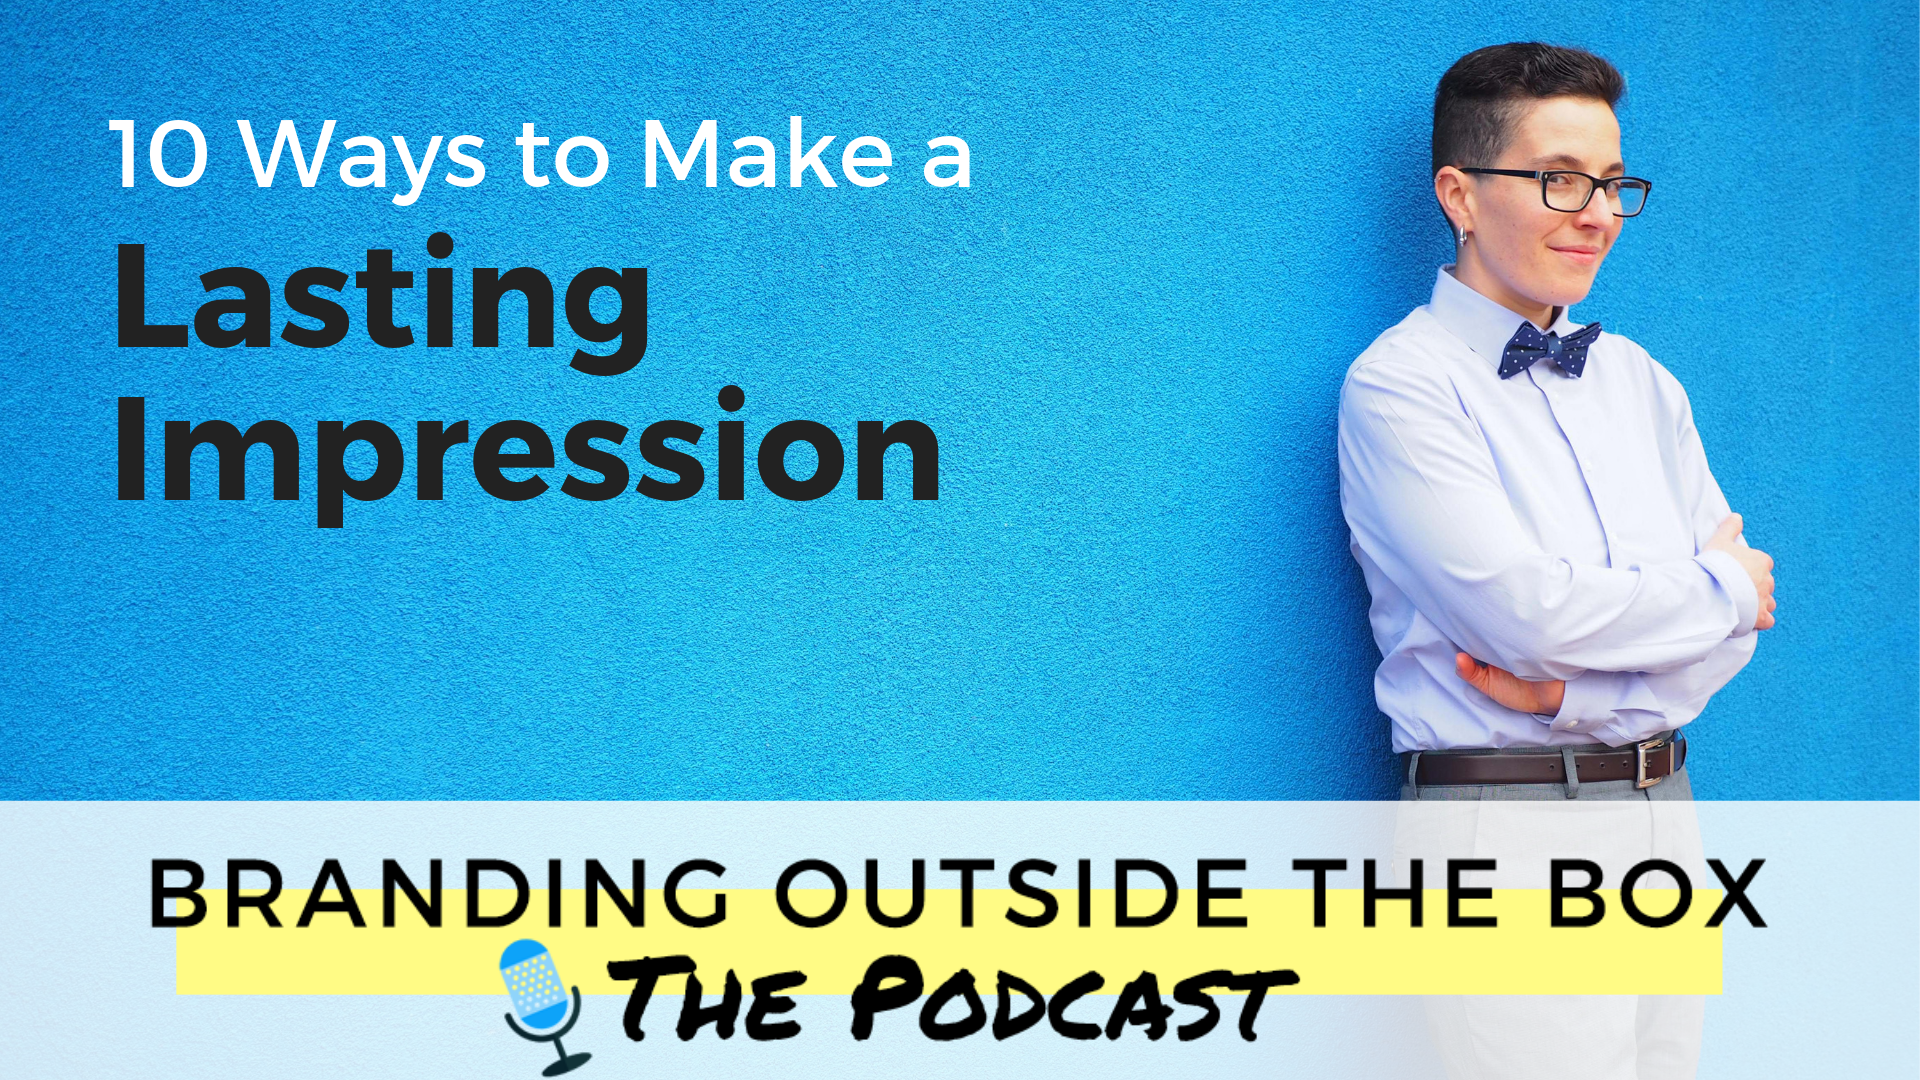 Your 10 Impressions: 10 Ways to Reach People, Multiple Times